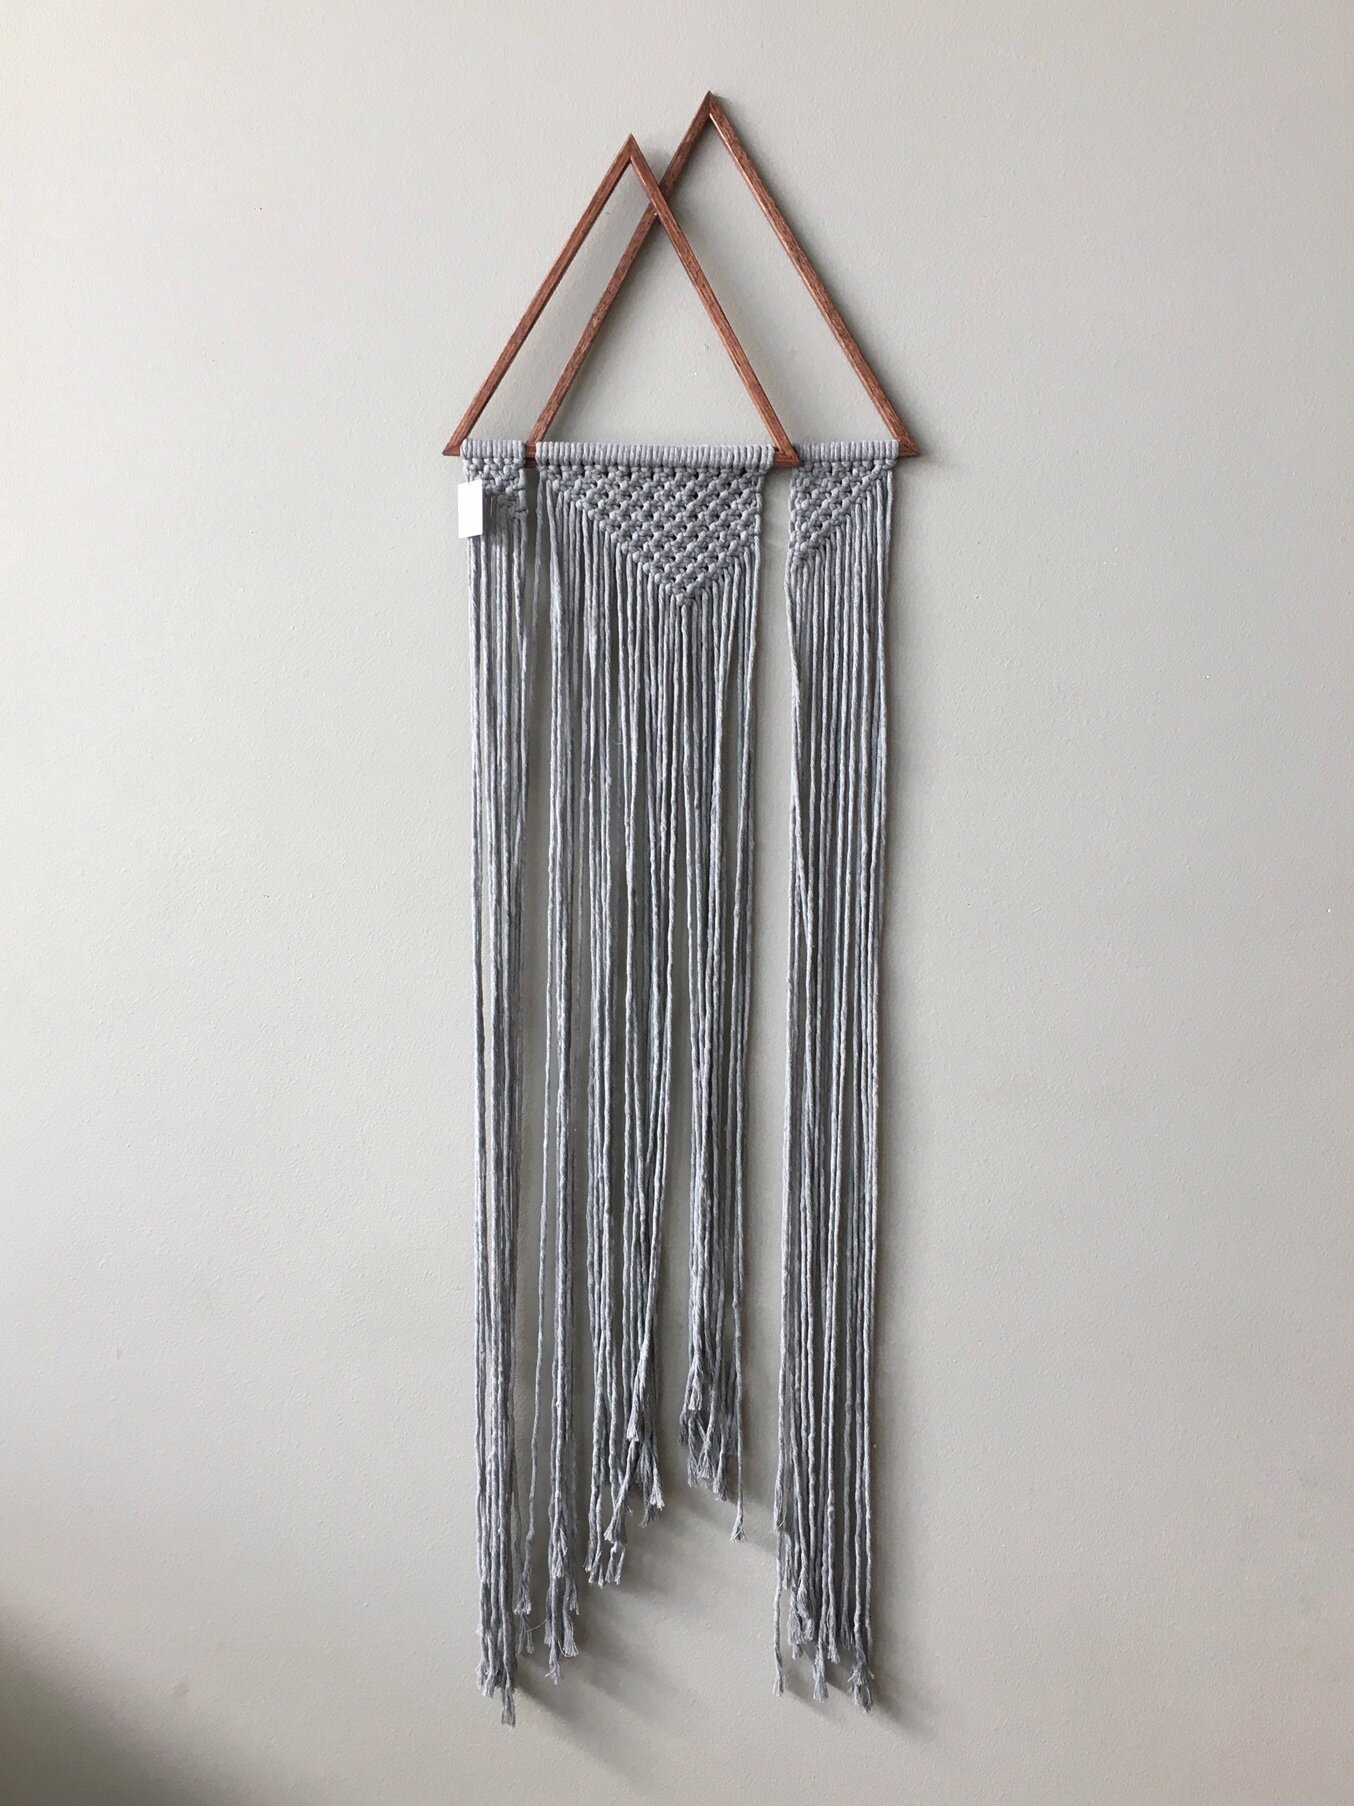 Double Triangle Mountain Macrame Wall Hanging By Collectanea